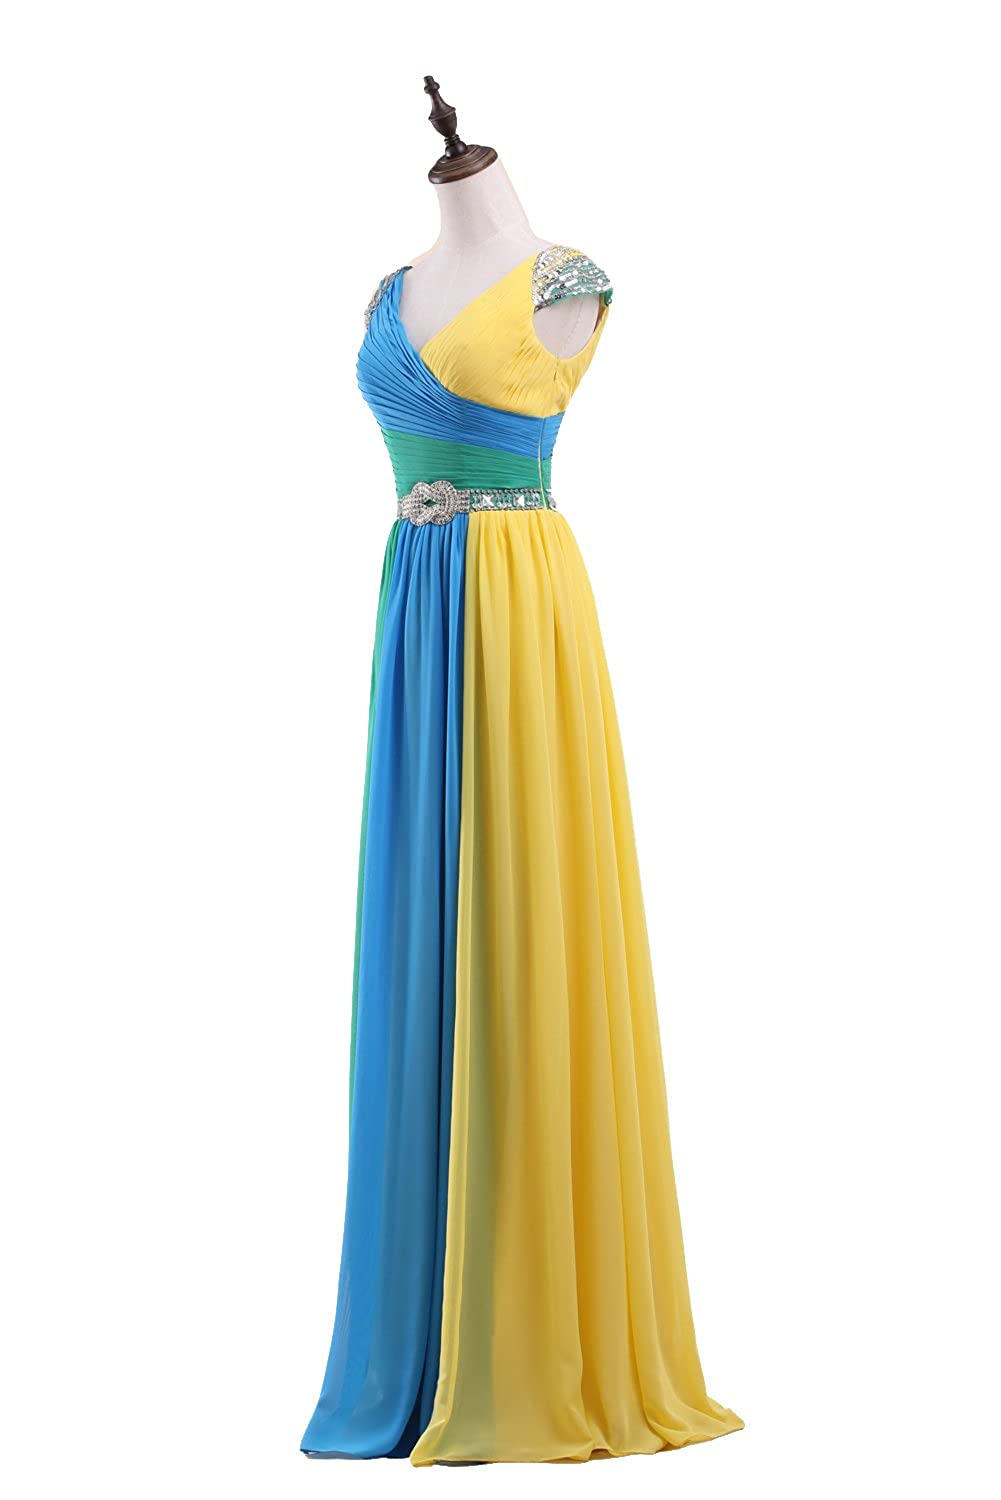 Zvocy Womens Sweetheart Ombre Prom Dress Long Evening Gradient